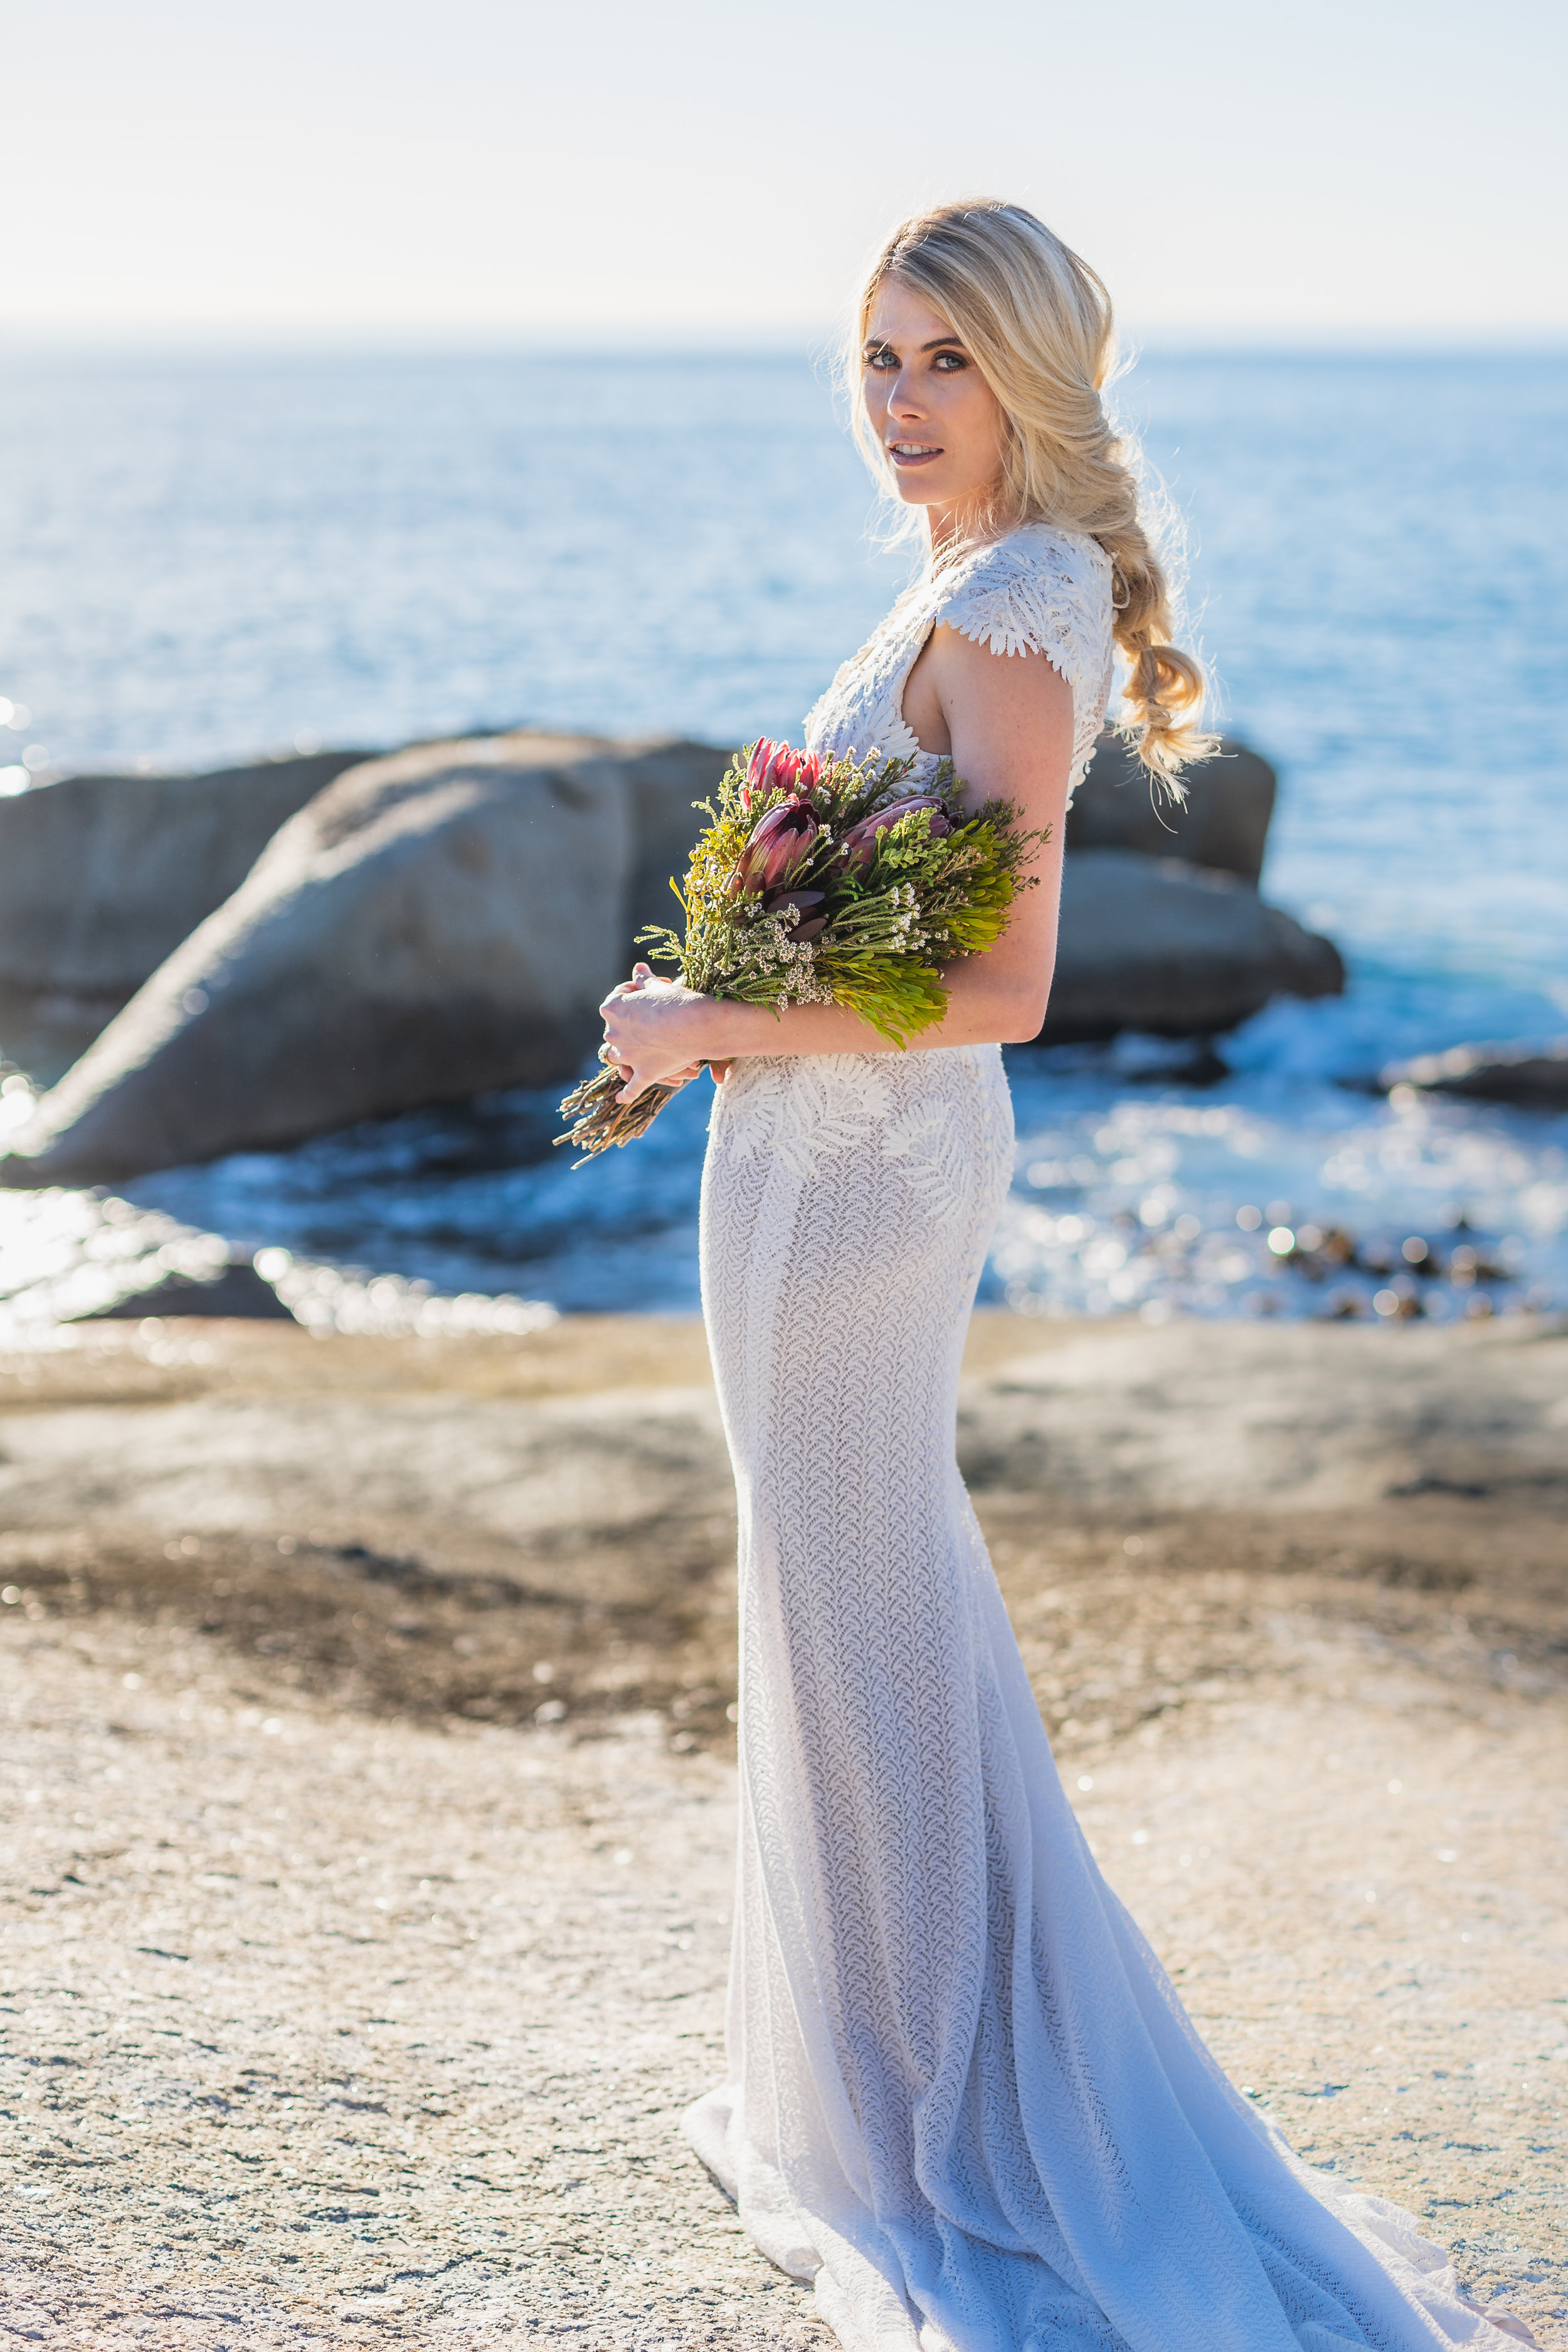 Wedding Elopement Photography - by Cape Image Co-6.jpg